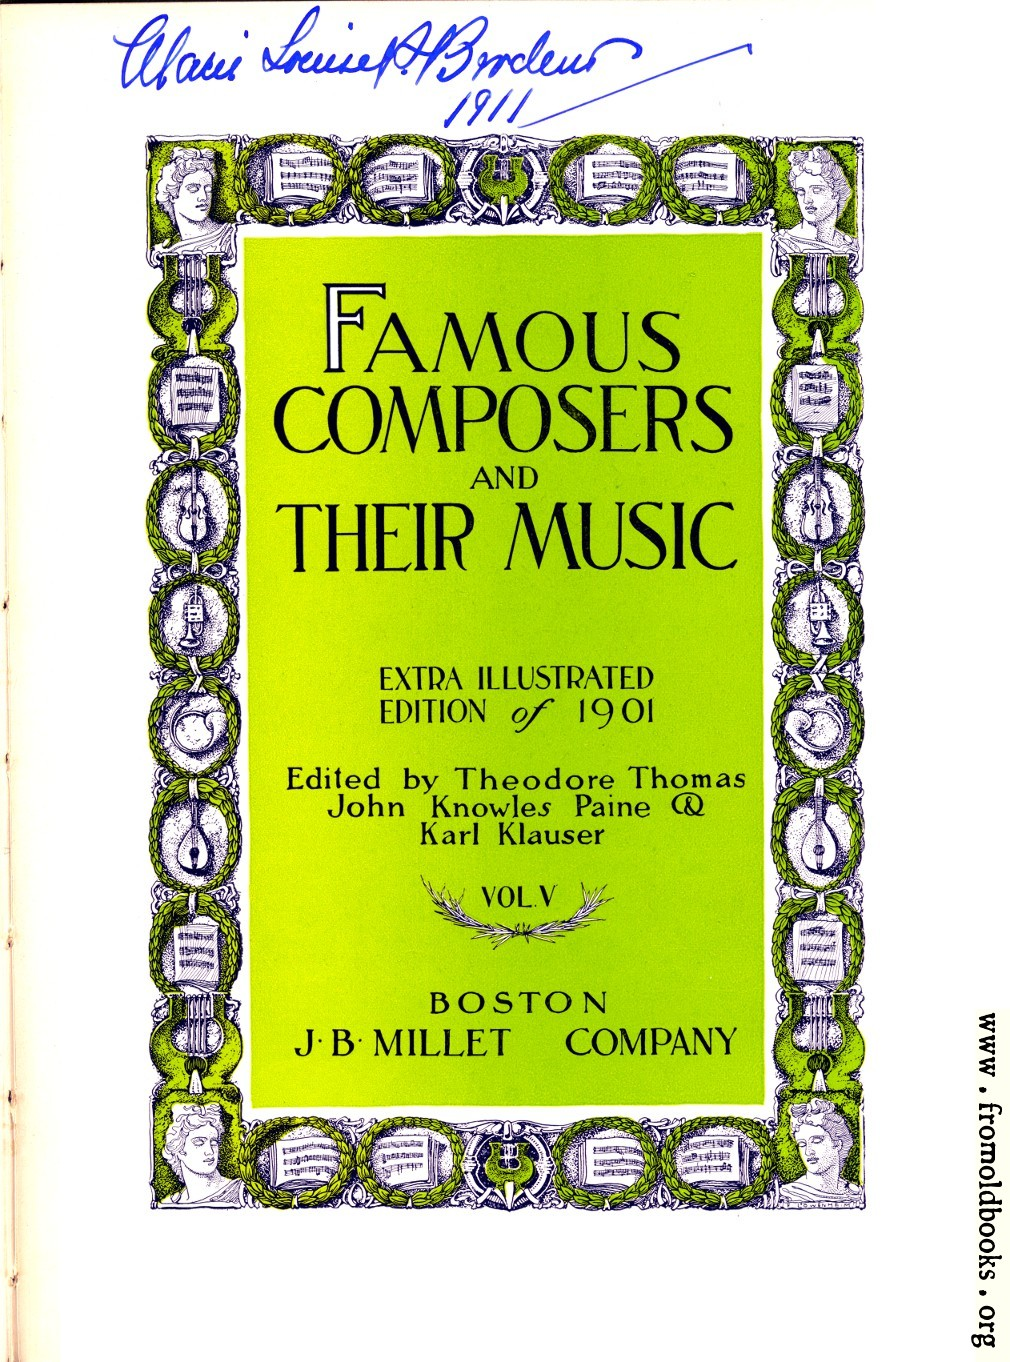 [Picture: Title Page from Famous Musicians]